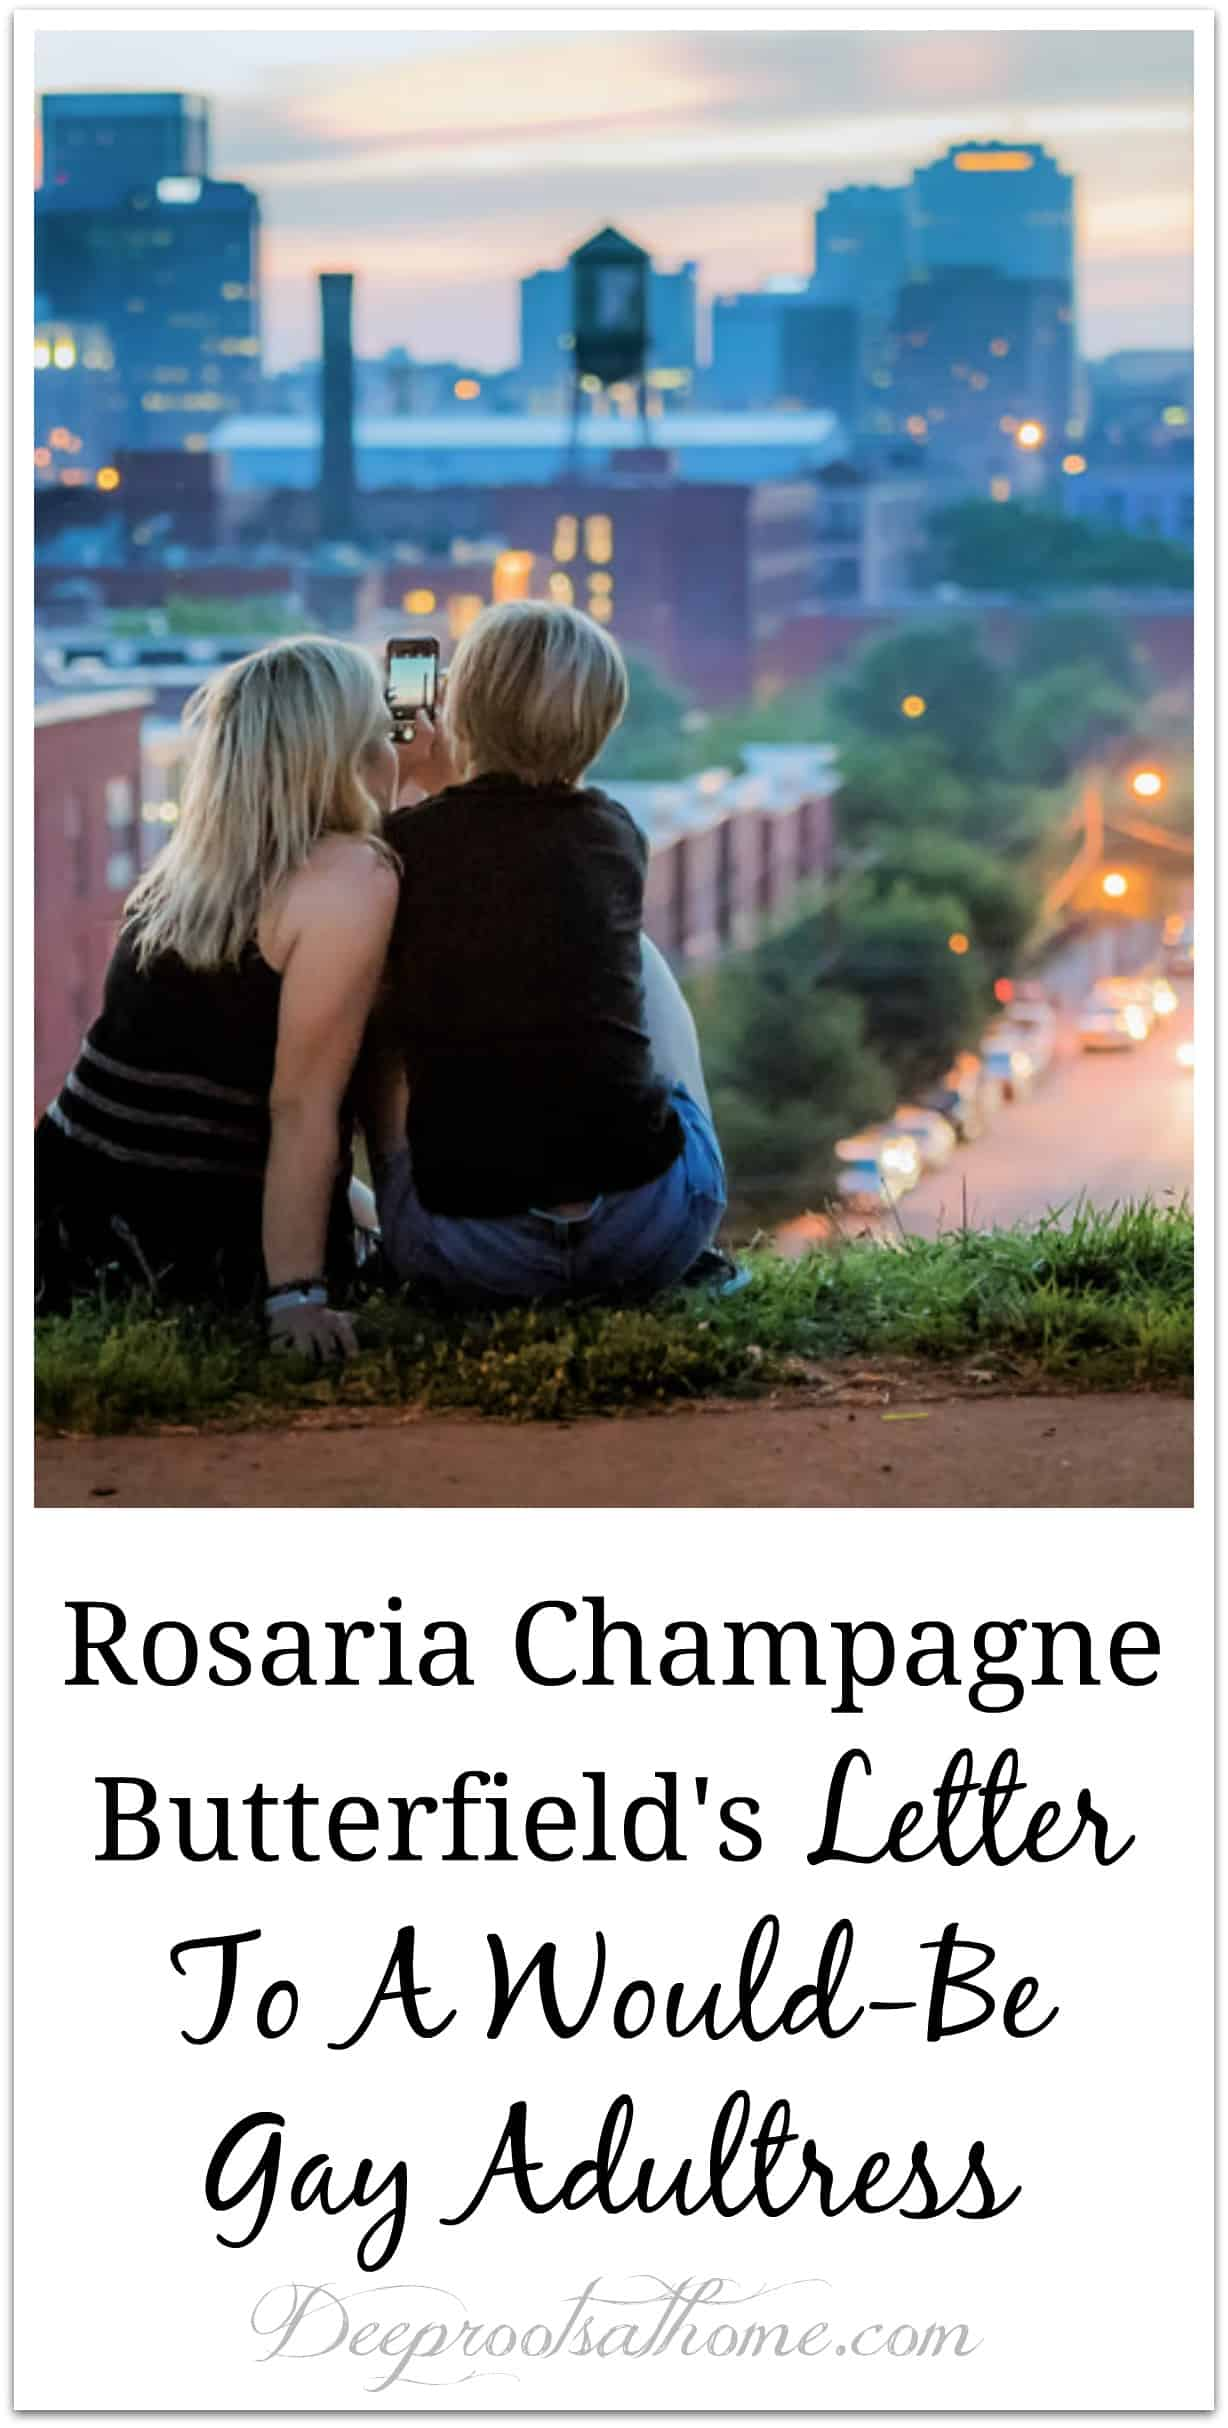 Rosaria Champagne Butterfield's Letter To A Potential Gay Adultress. More and more women, it seems, are in this place of temptation. #marriage #woman #womens #friends #family #healthy #relationships #faith #mentalhealth